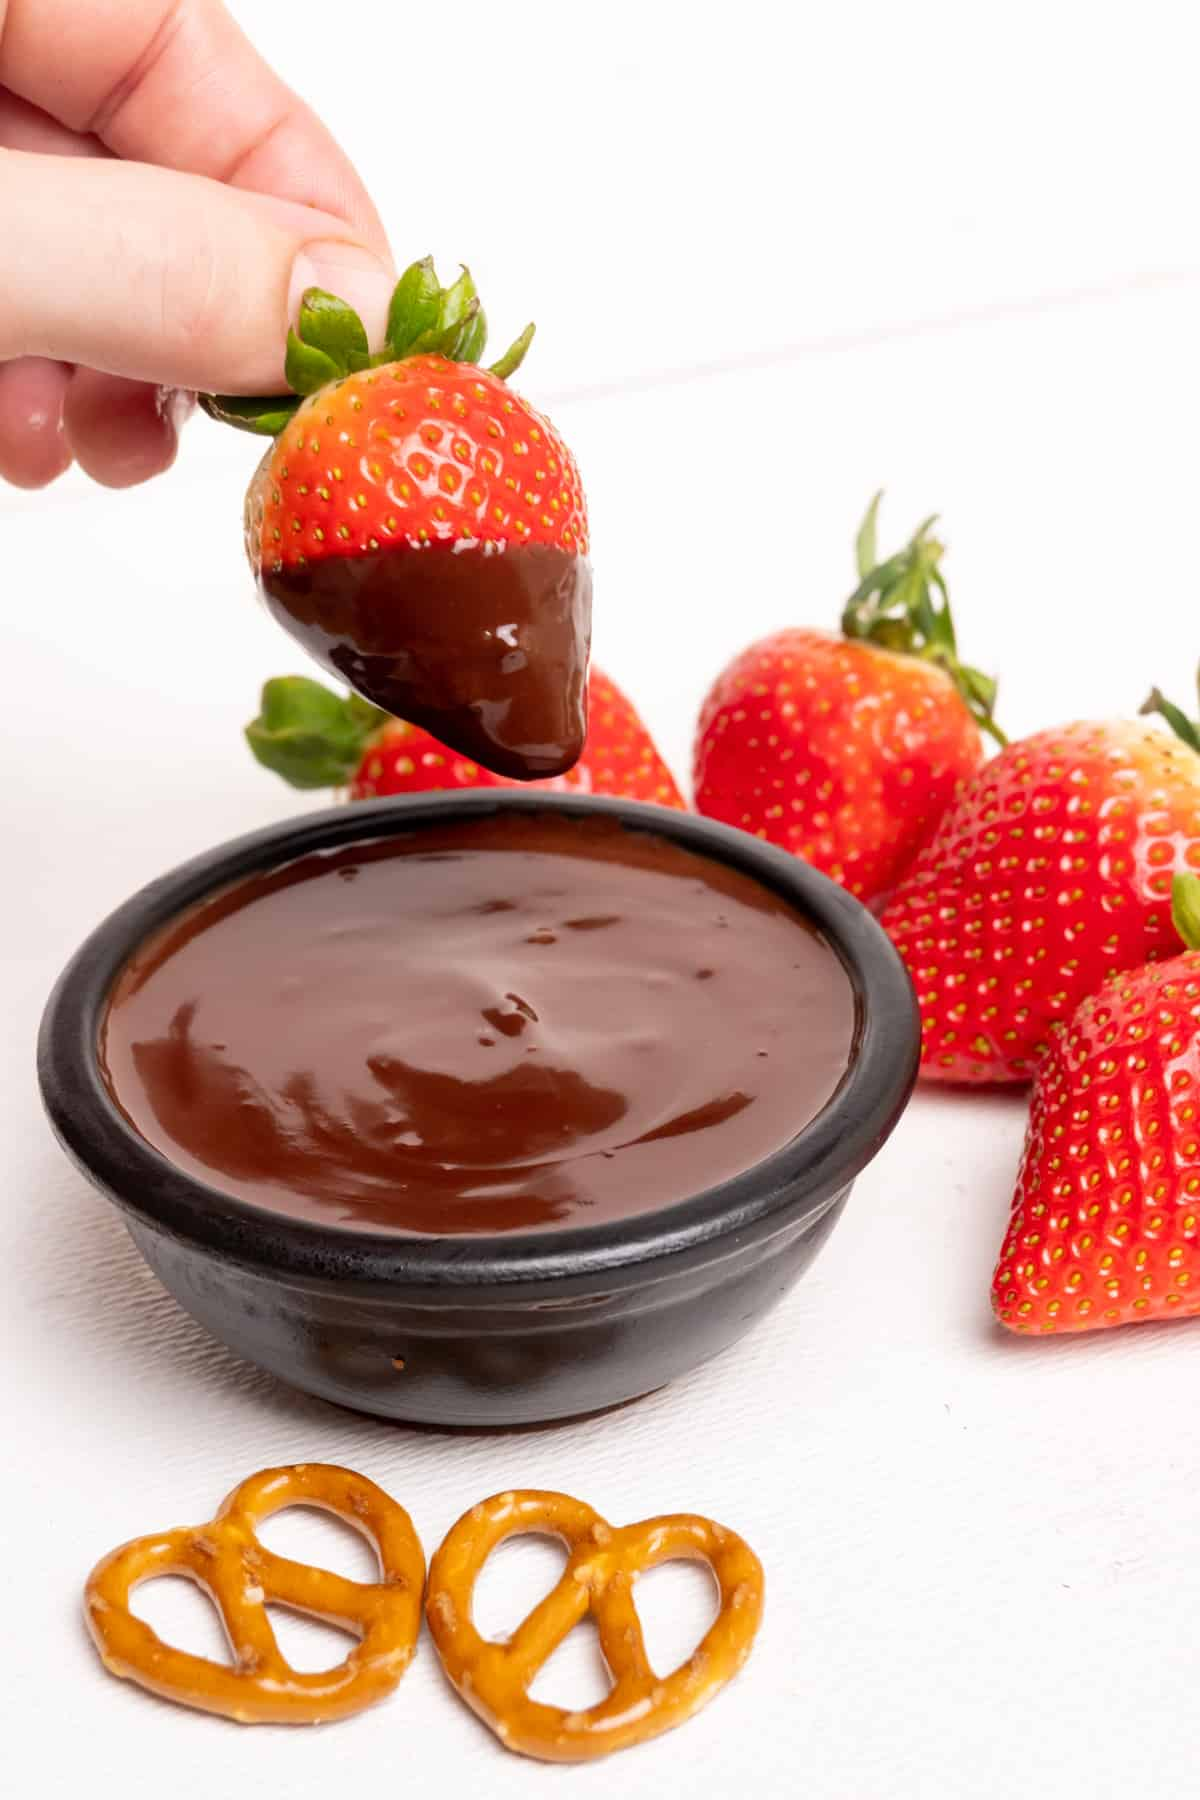 A hand holds a strawberry covered in dark chocolate fondue.